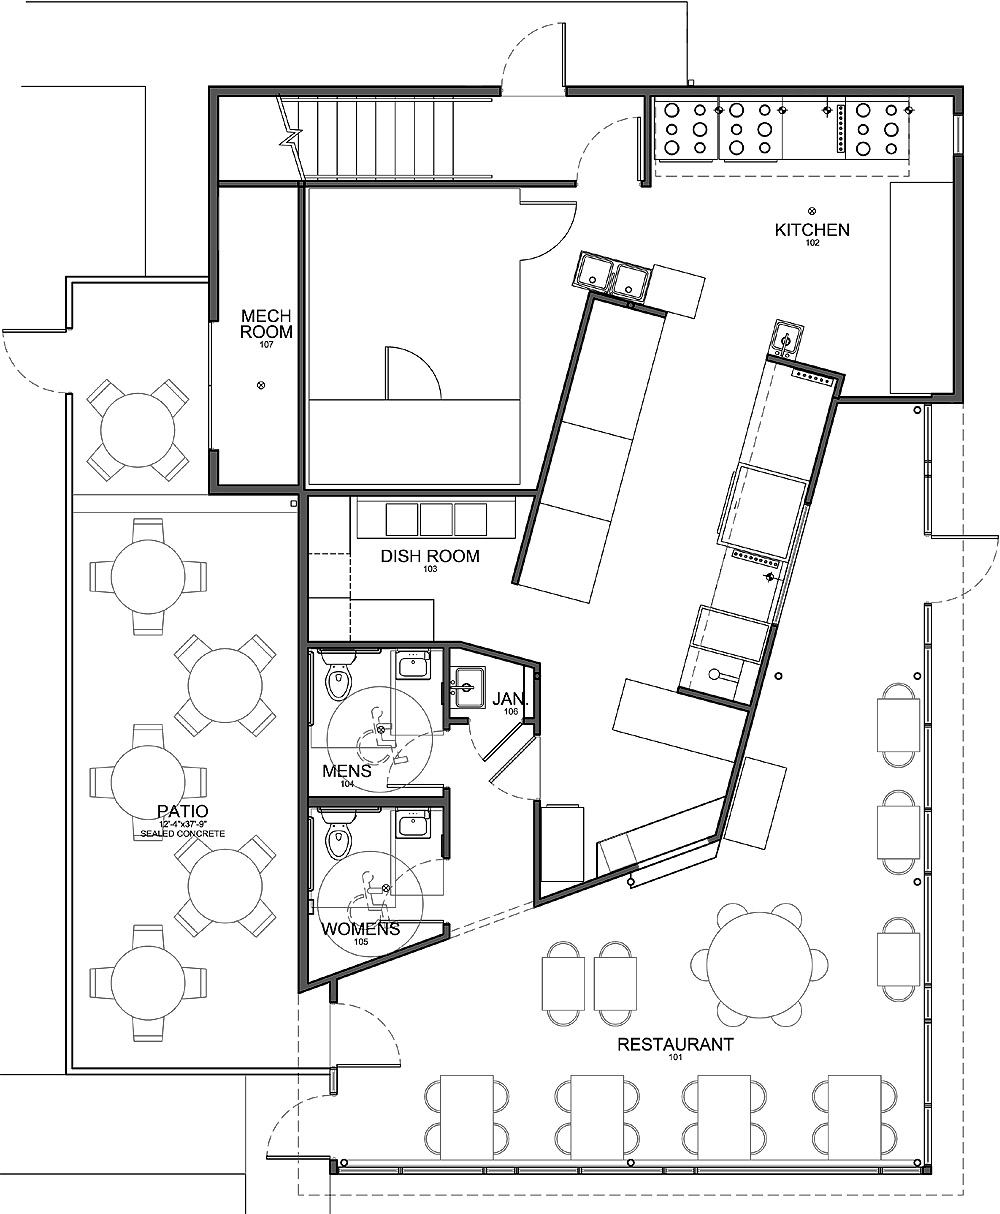 Small Restaurant Kitchen Floor Plan